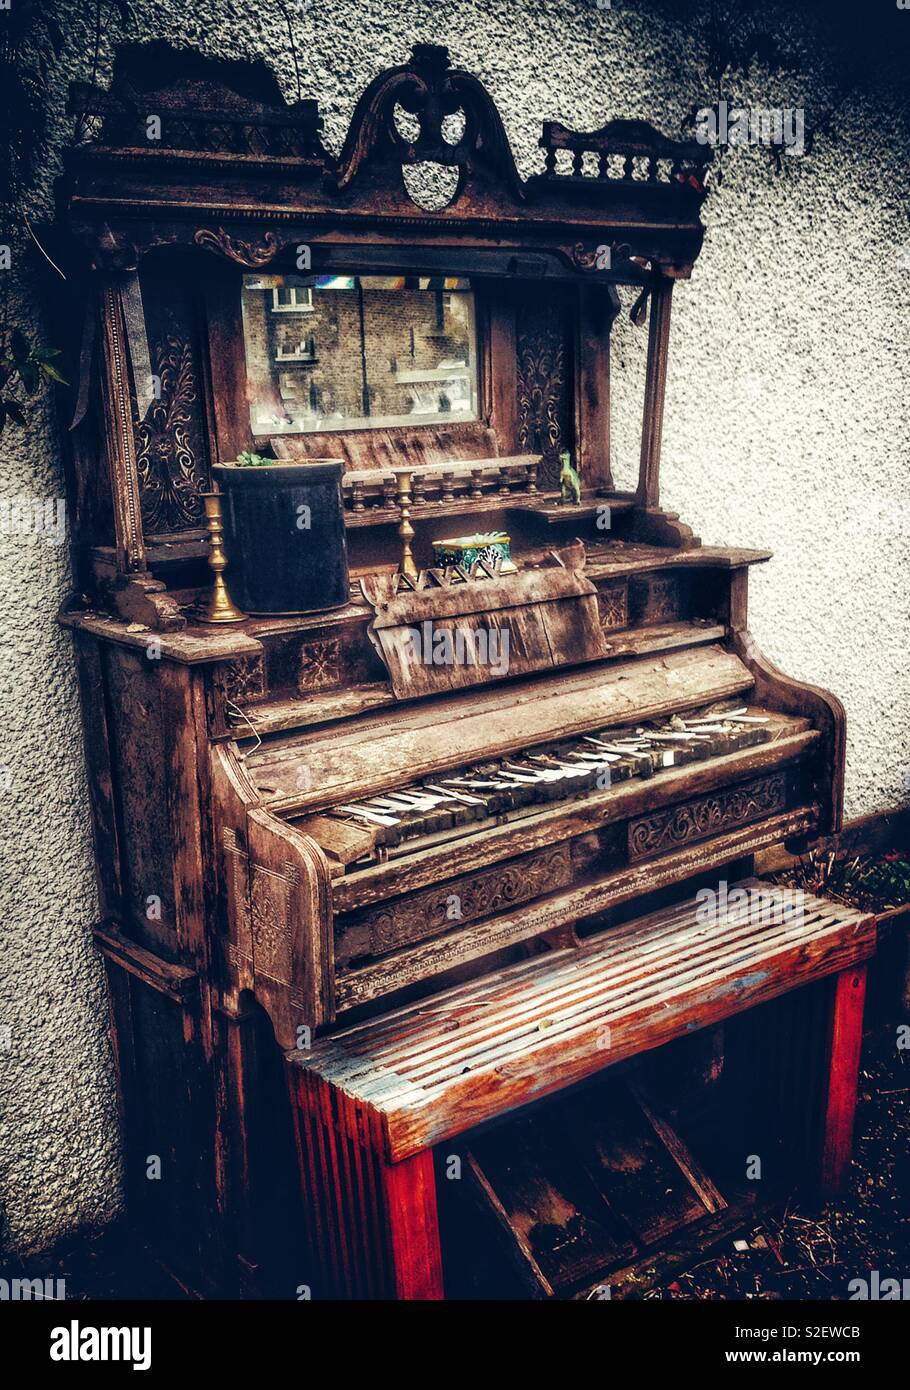 Dilapidated old pump organ being used as an unusual garden curiosity - Stock Image